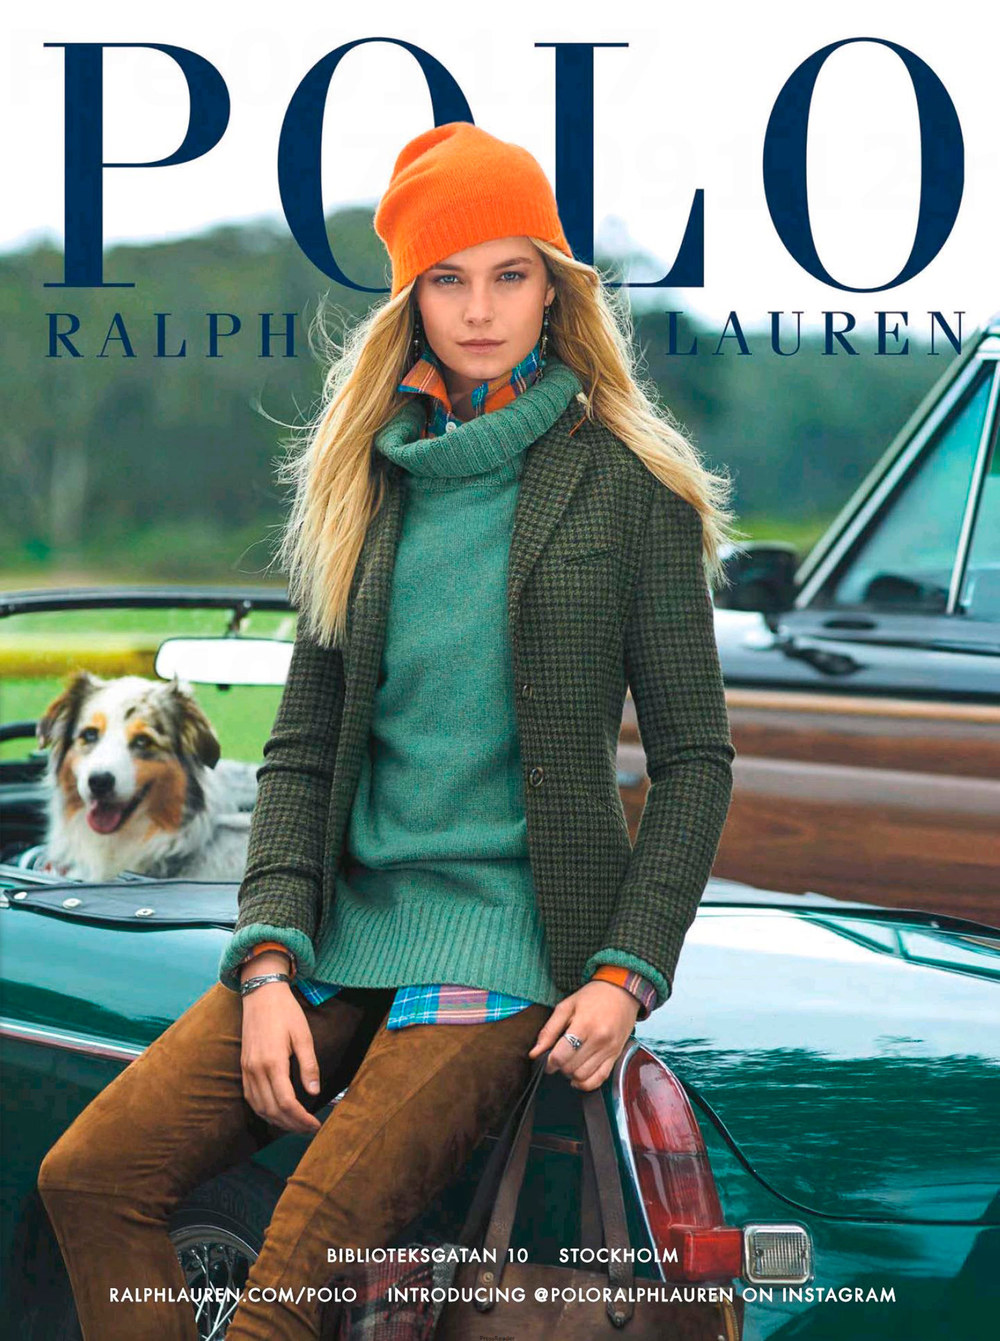 BRIDGET MALCOLM_POLO RALPH LAUREN_JOEL GRIFFITH.jpg